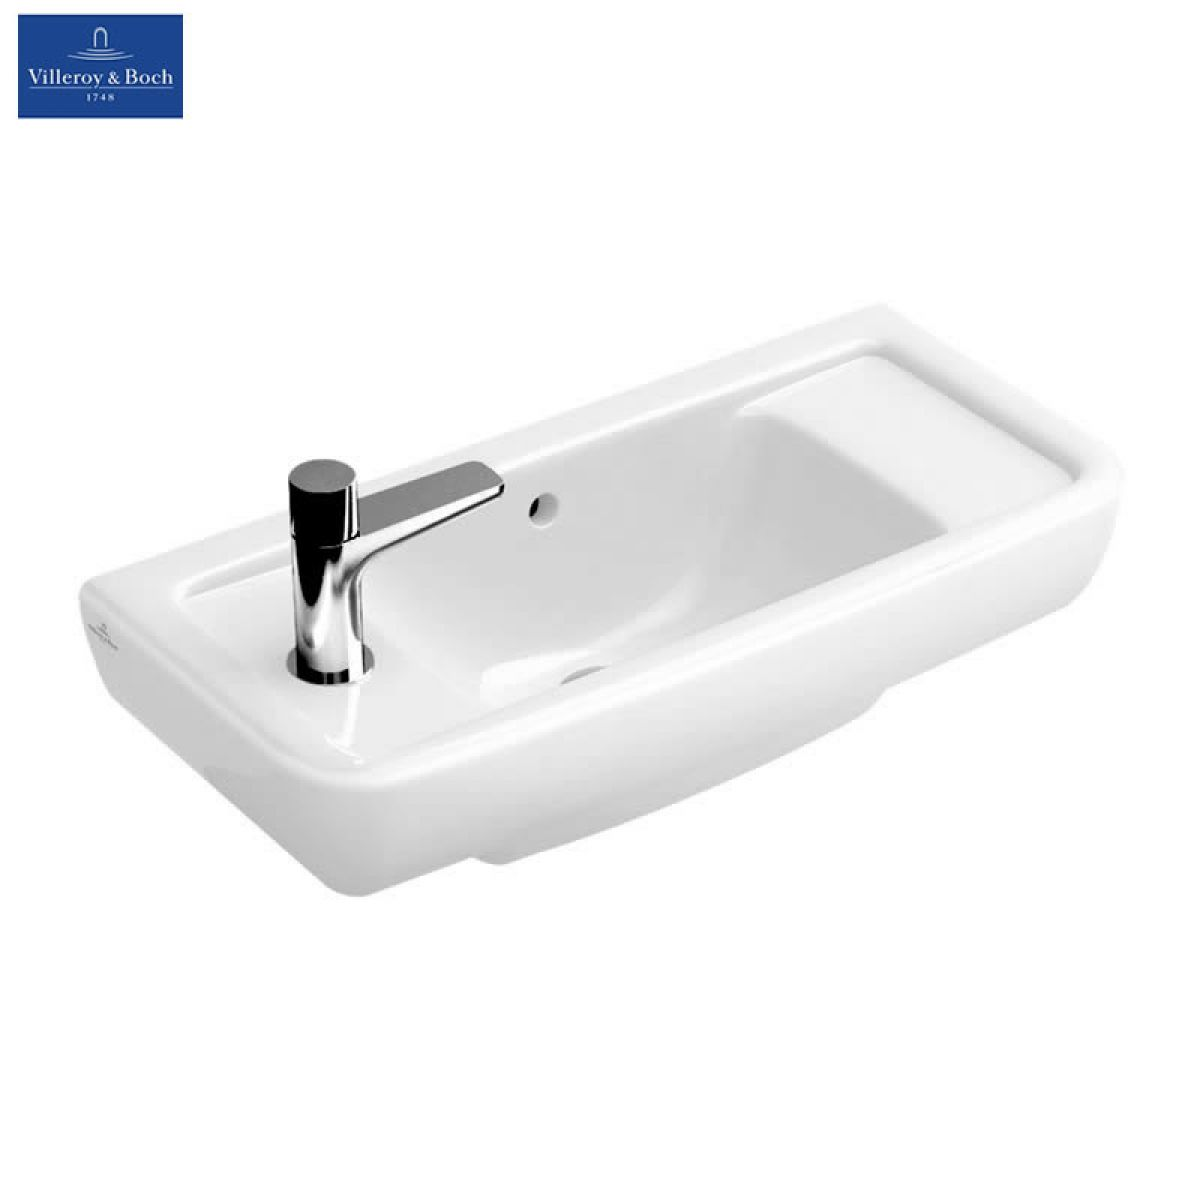 Buy Villeroy Boch Online With Fast Delivery Ukbathrooms